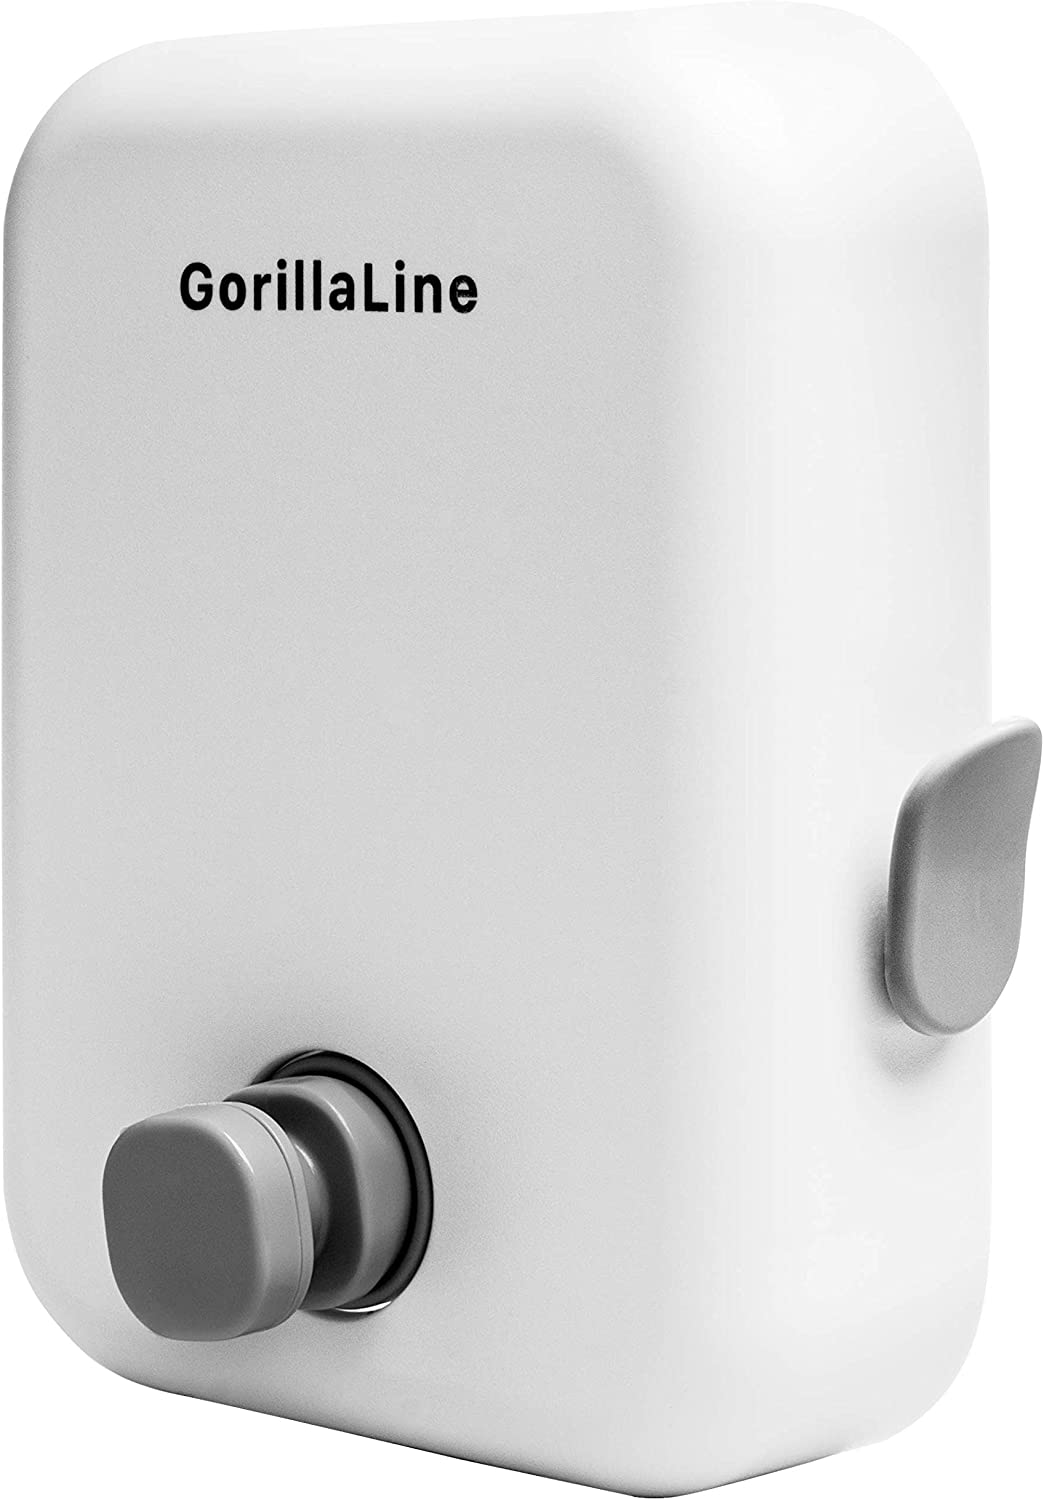 GorillaLine - Retractable Clothesline | Premium Heavy Duty Clothes Drying Laundry Line | Wall Mounted Stainless Steel Laundry Line | Retracting Hanging Clothing Drying Rack